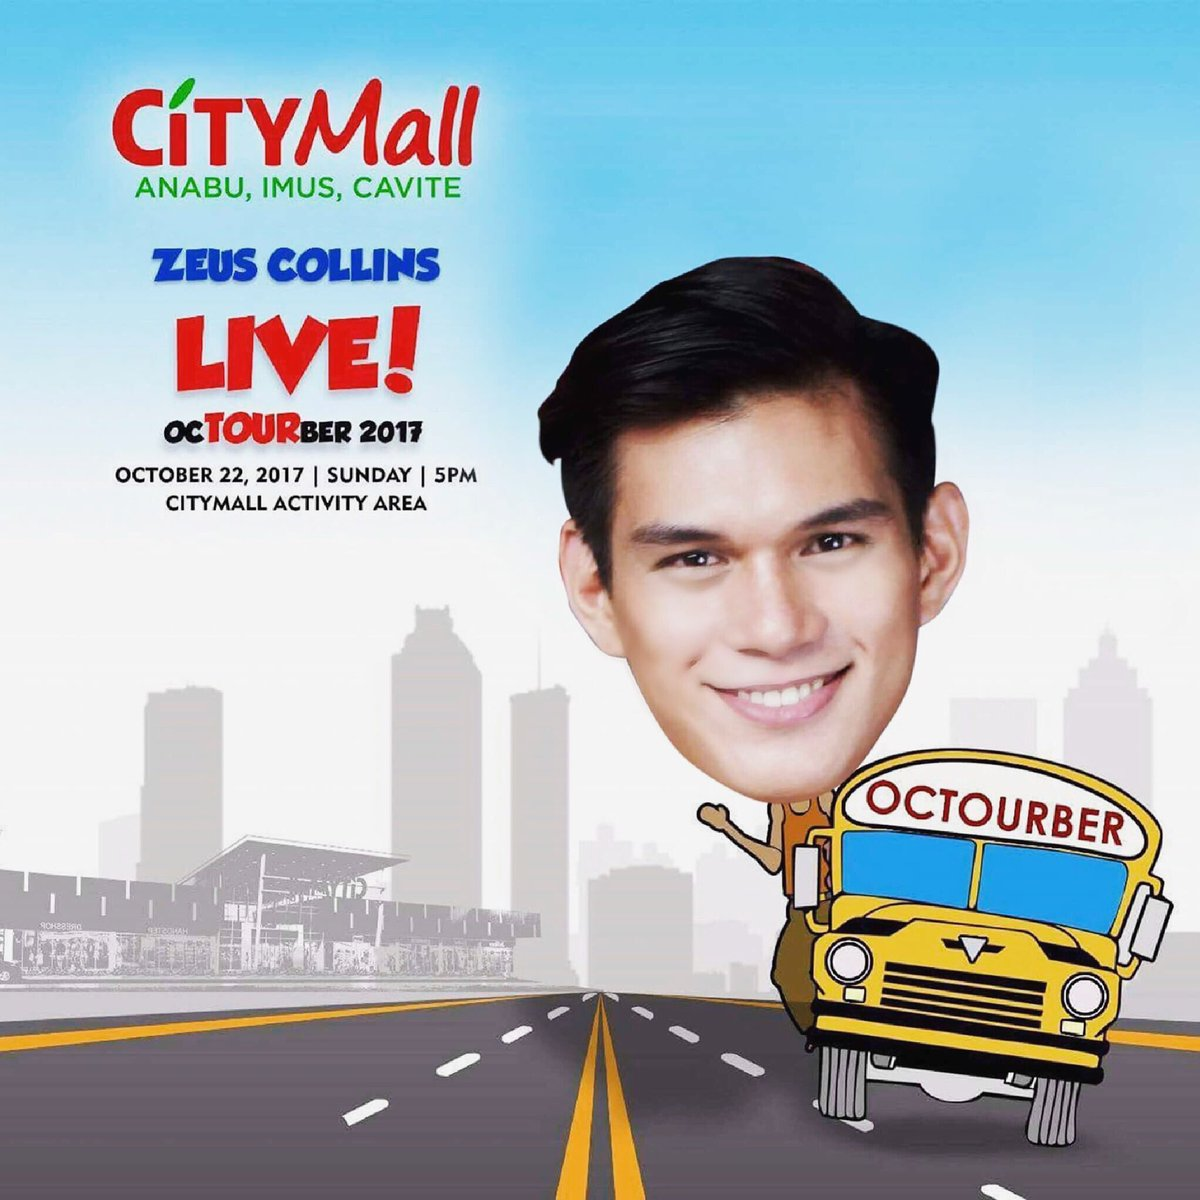 See you at CityMall Cavite this Sunday 😊